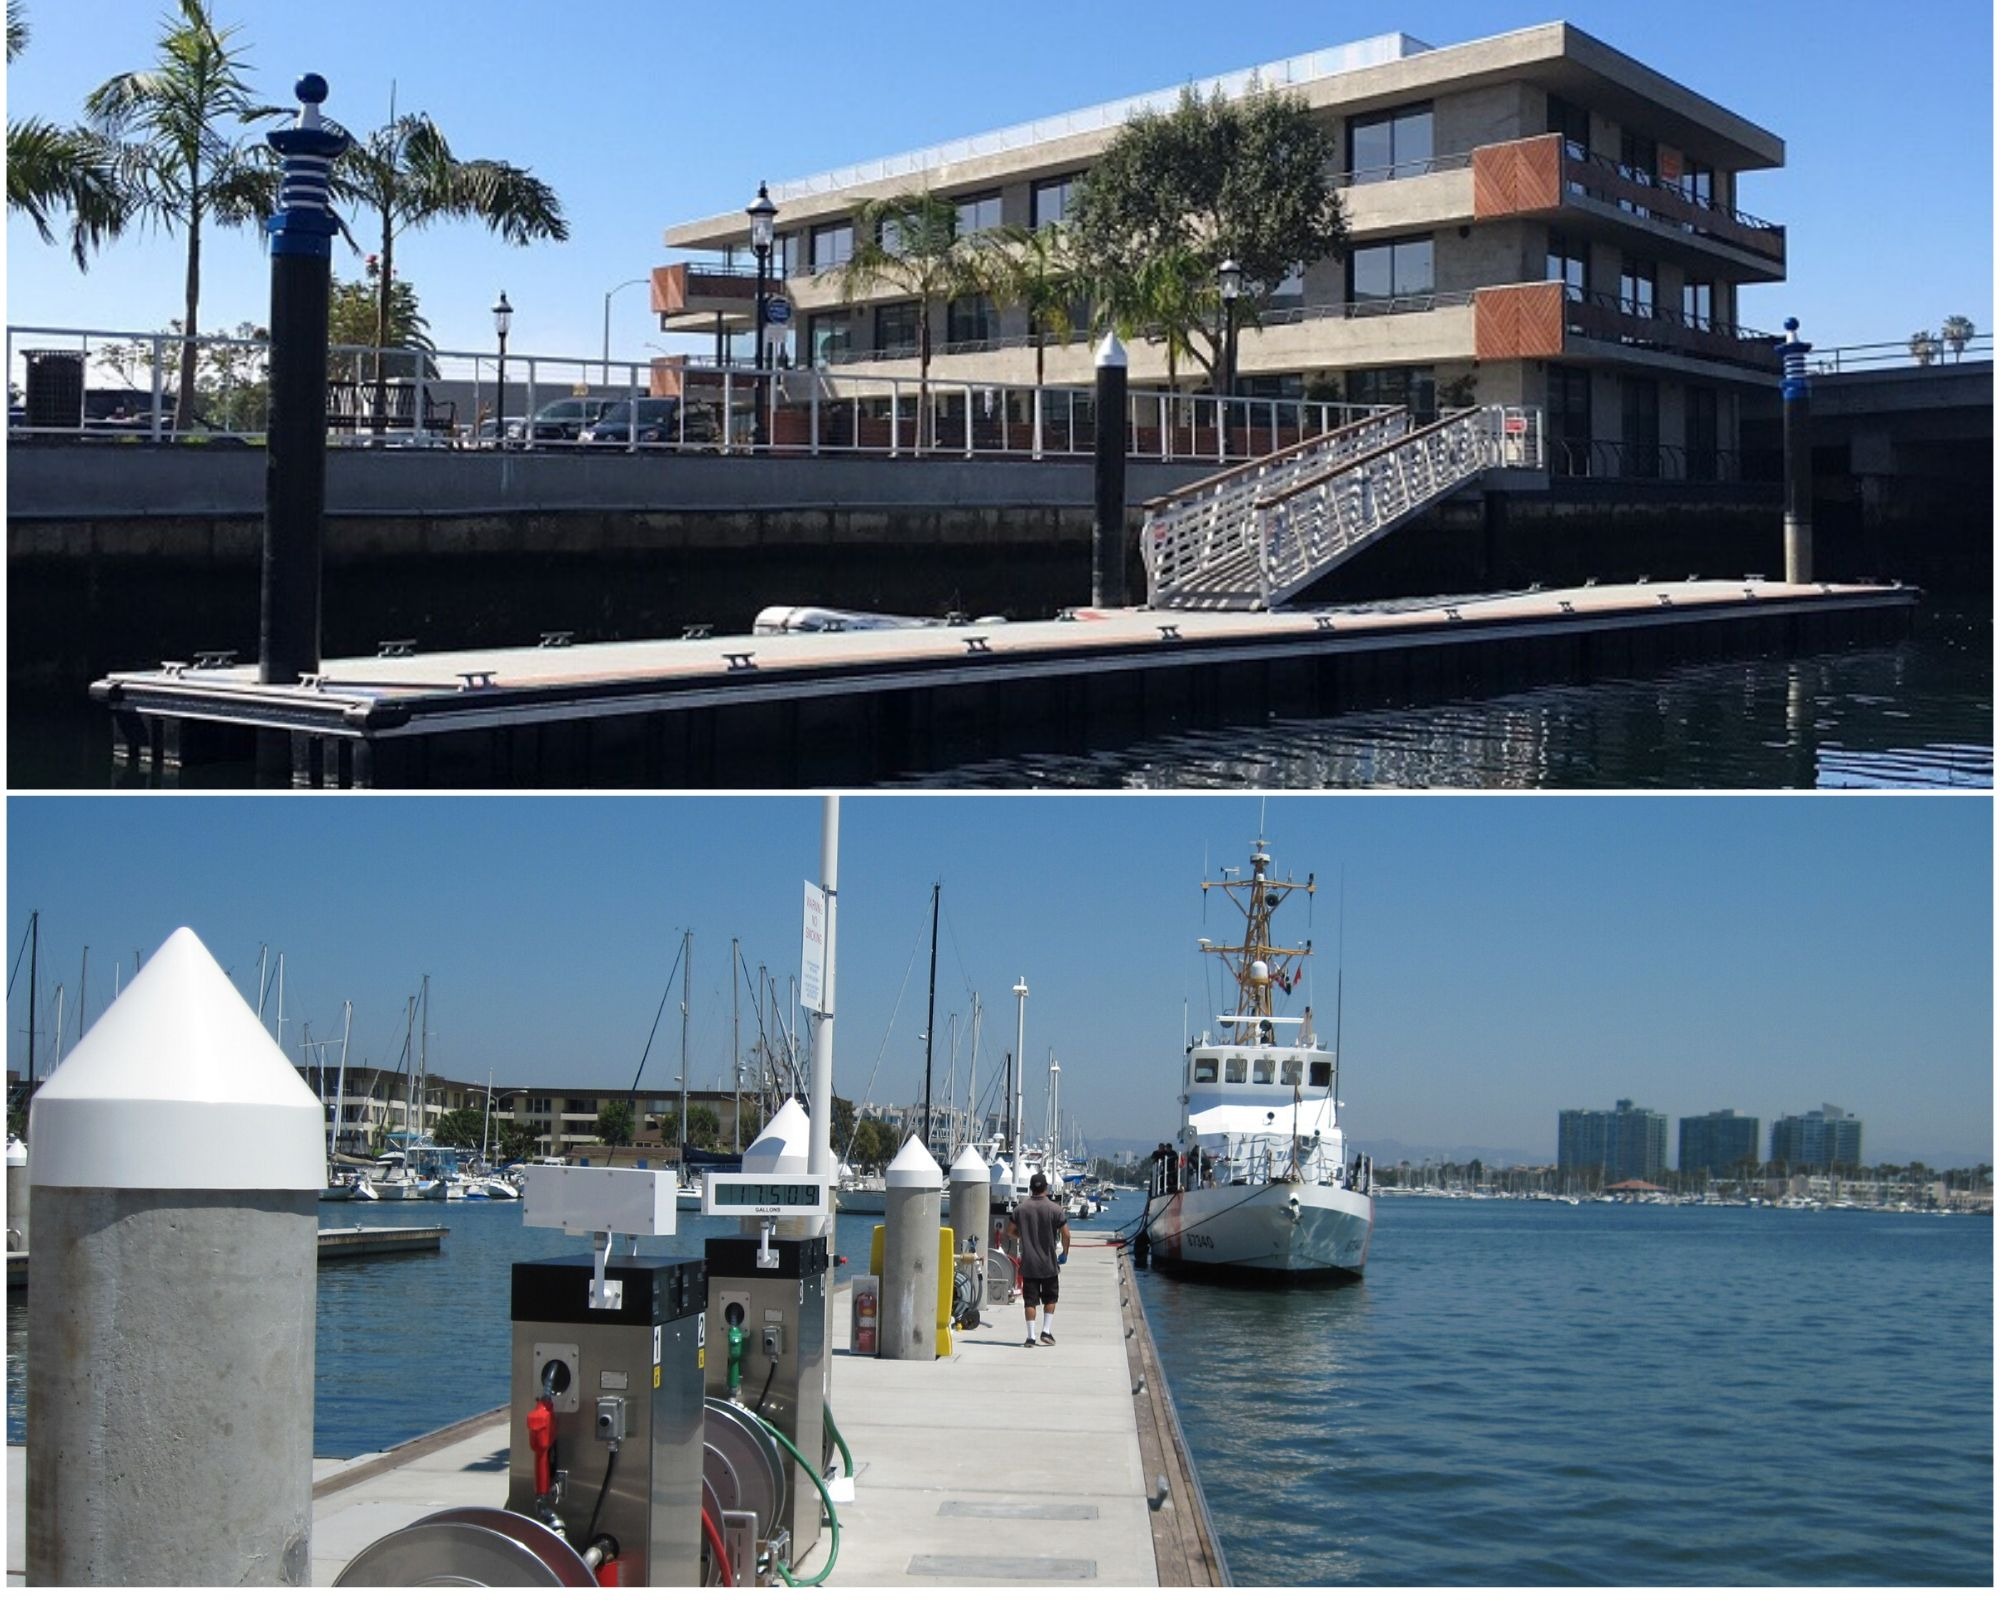 Newport Beach and Marina del Rey